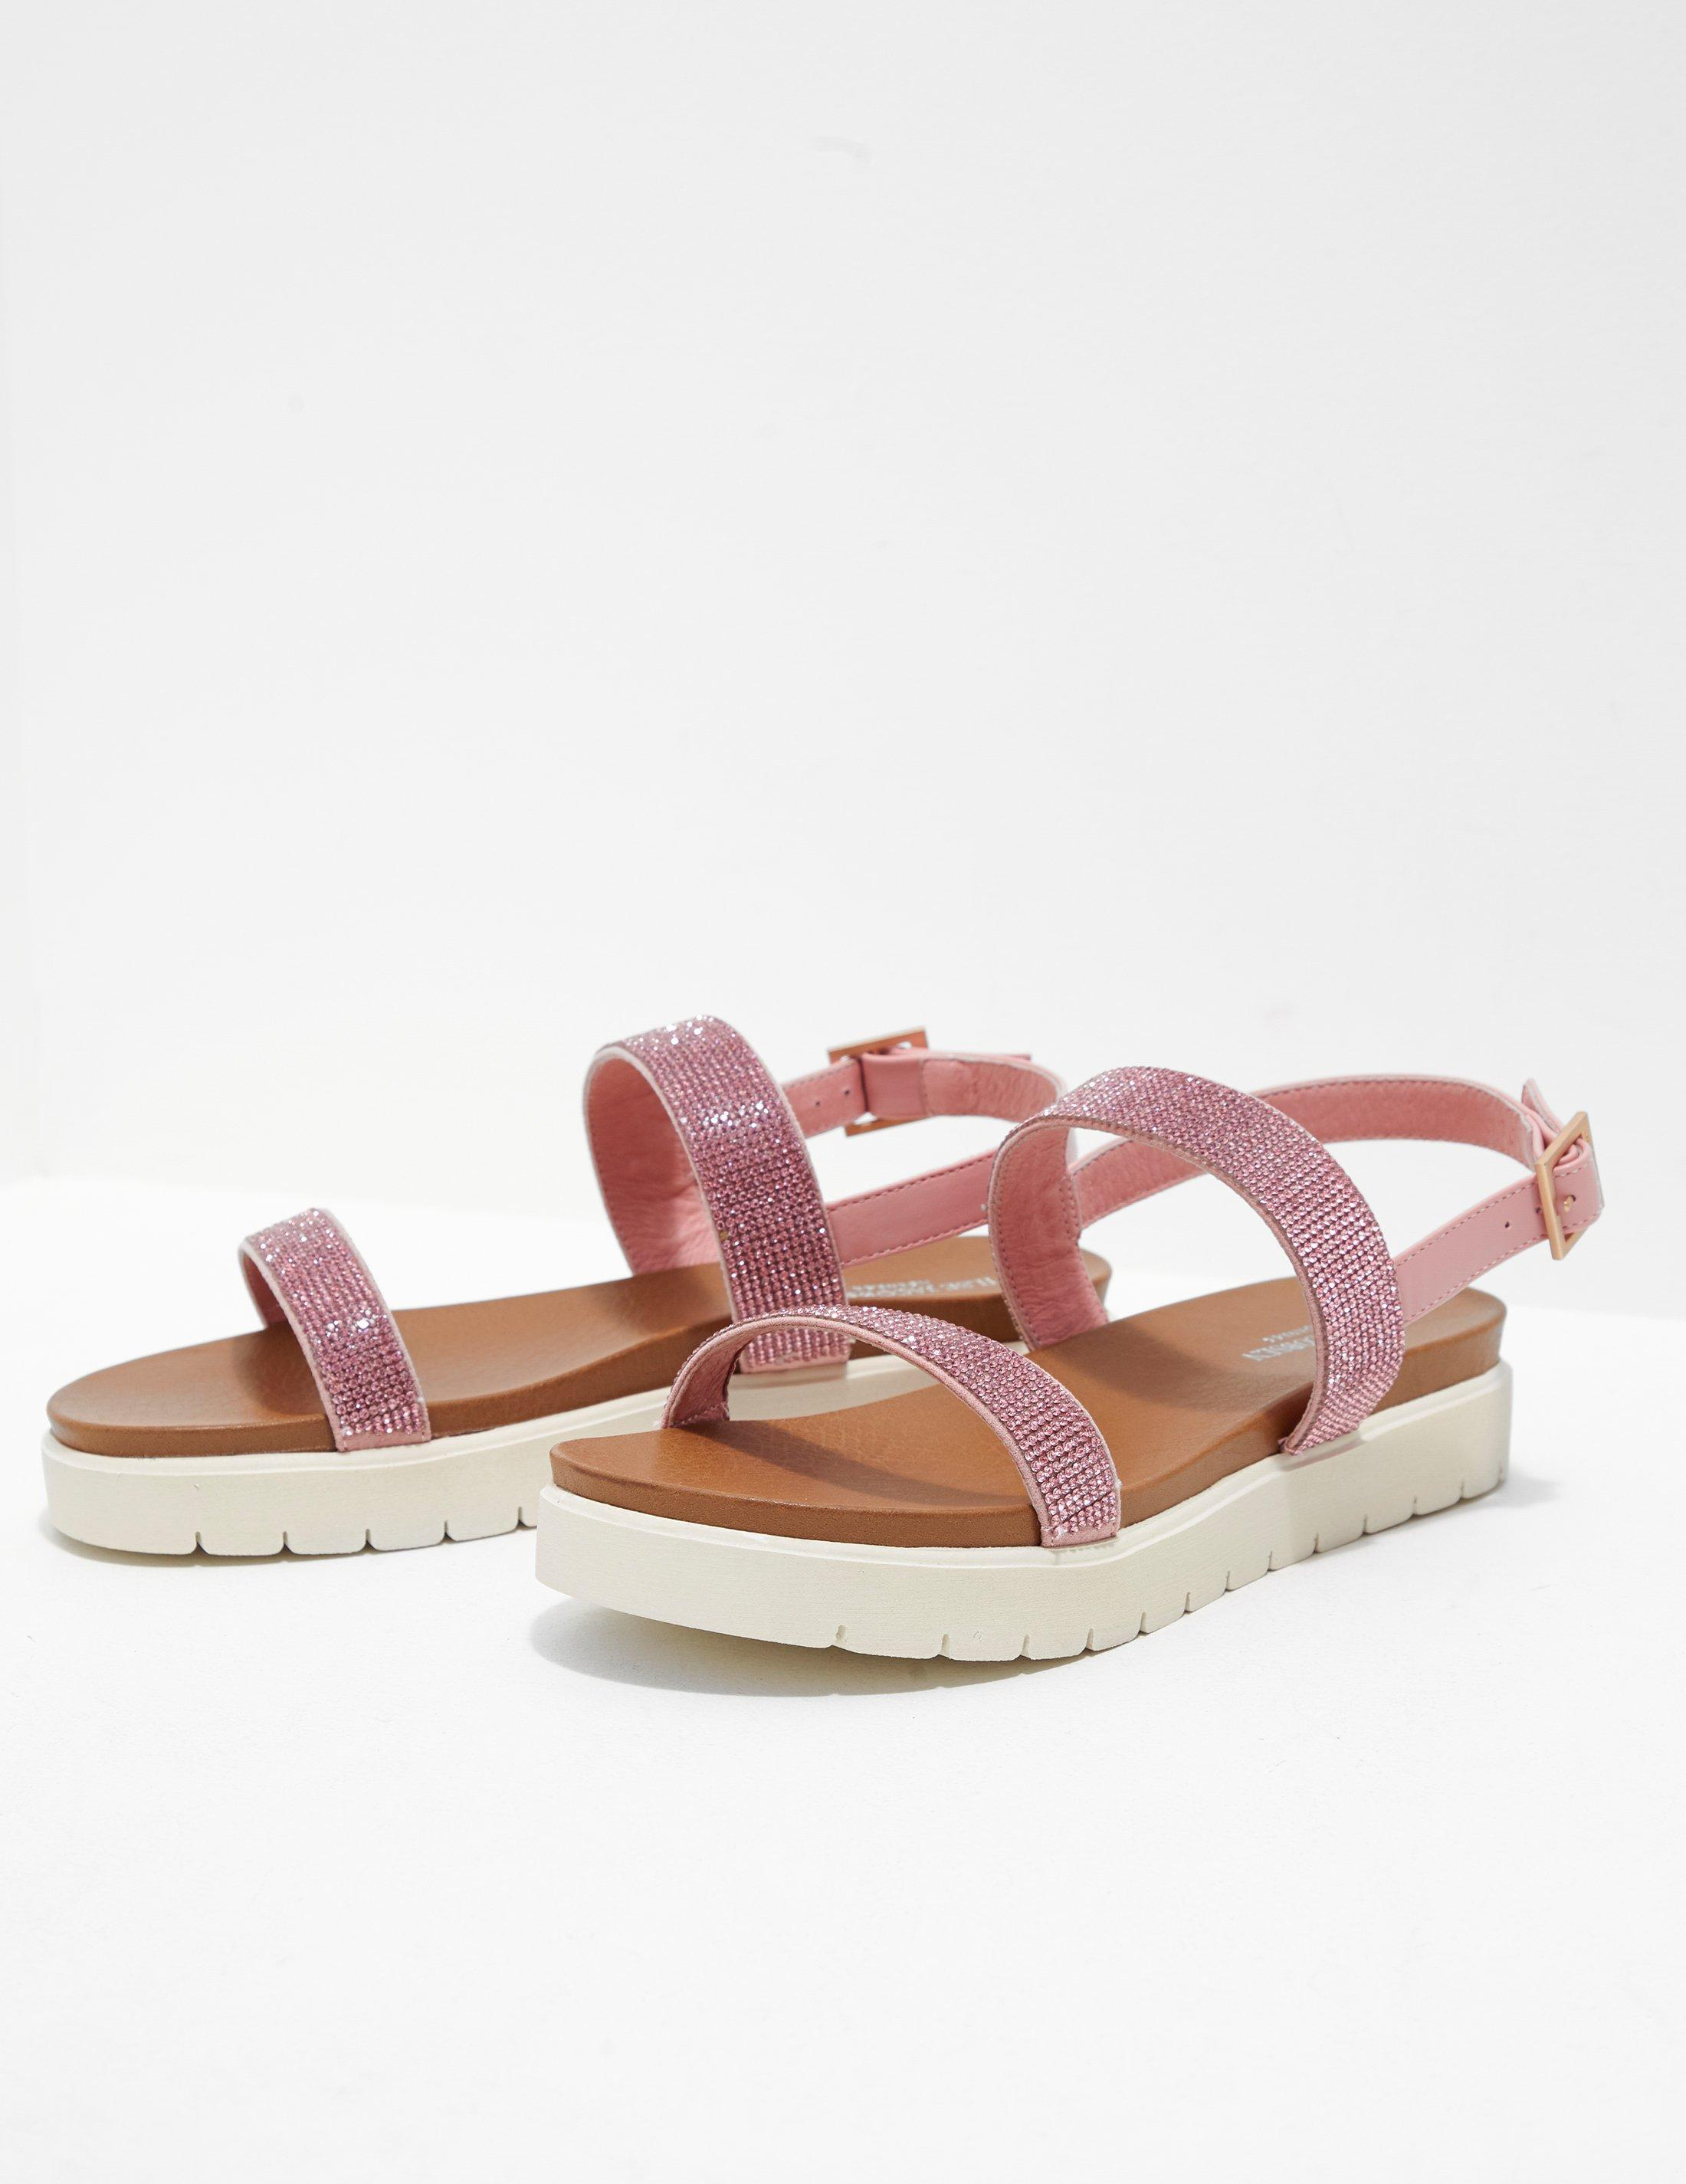 eb6eaa96b868 Ilse Jacobsen Womens Diamante Strap Sandals Pink in Pink - Lyst